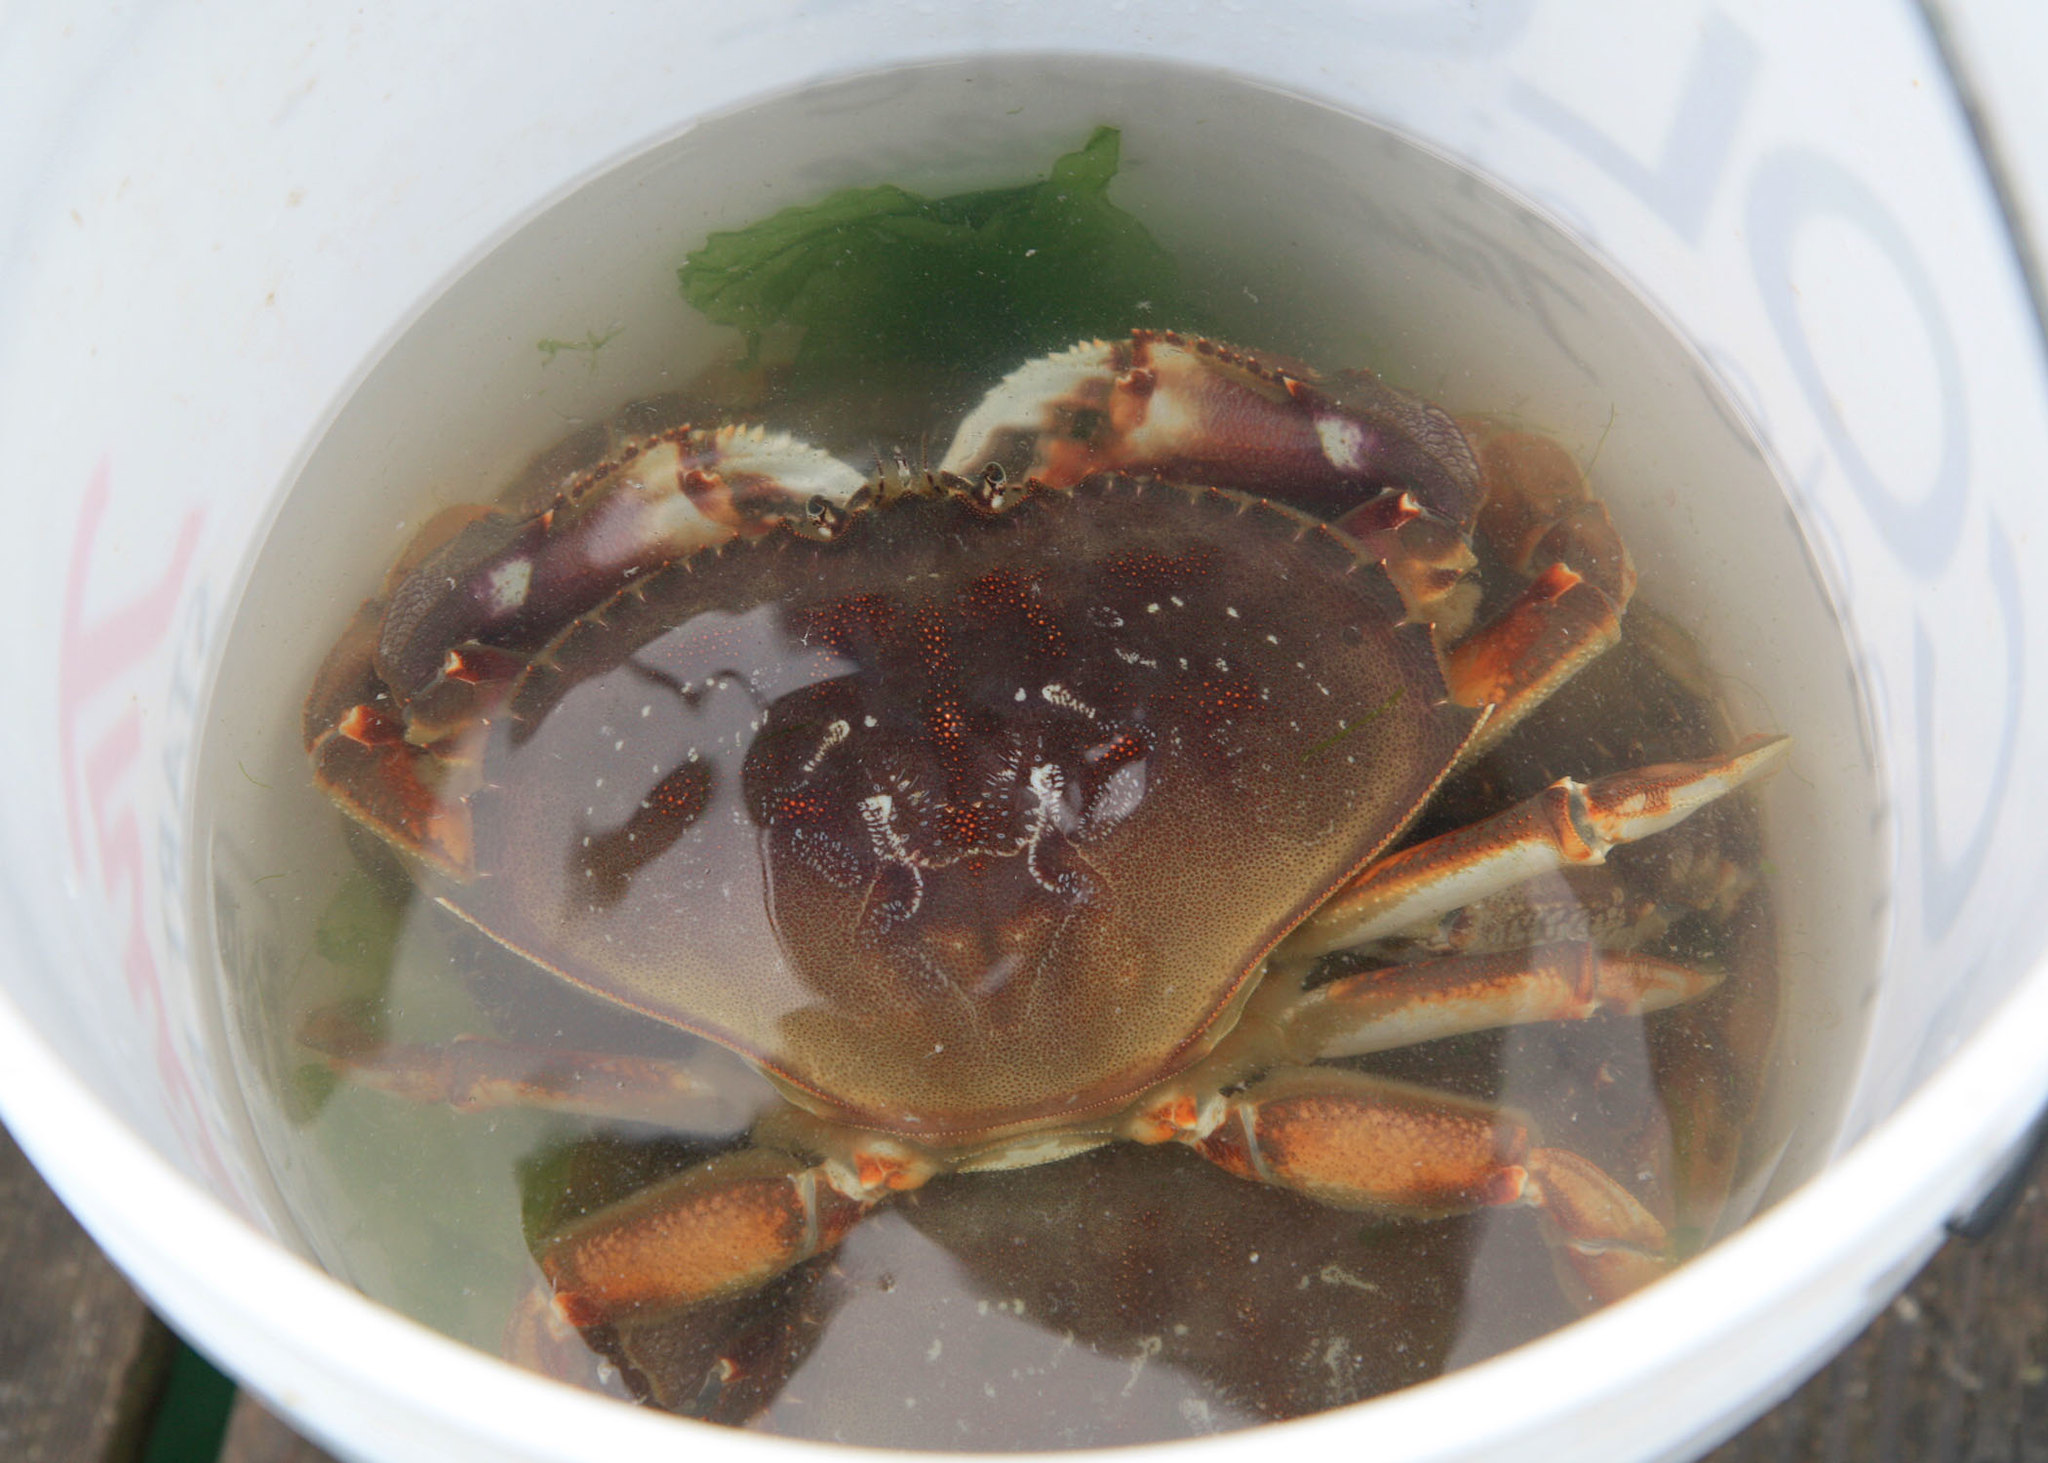 Eastern Oregon Couple on the Hook for $1,400 After Selling Dungeness Crab on Social Media